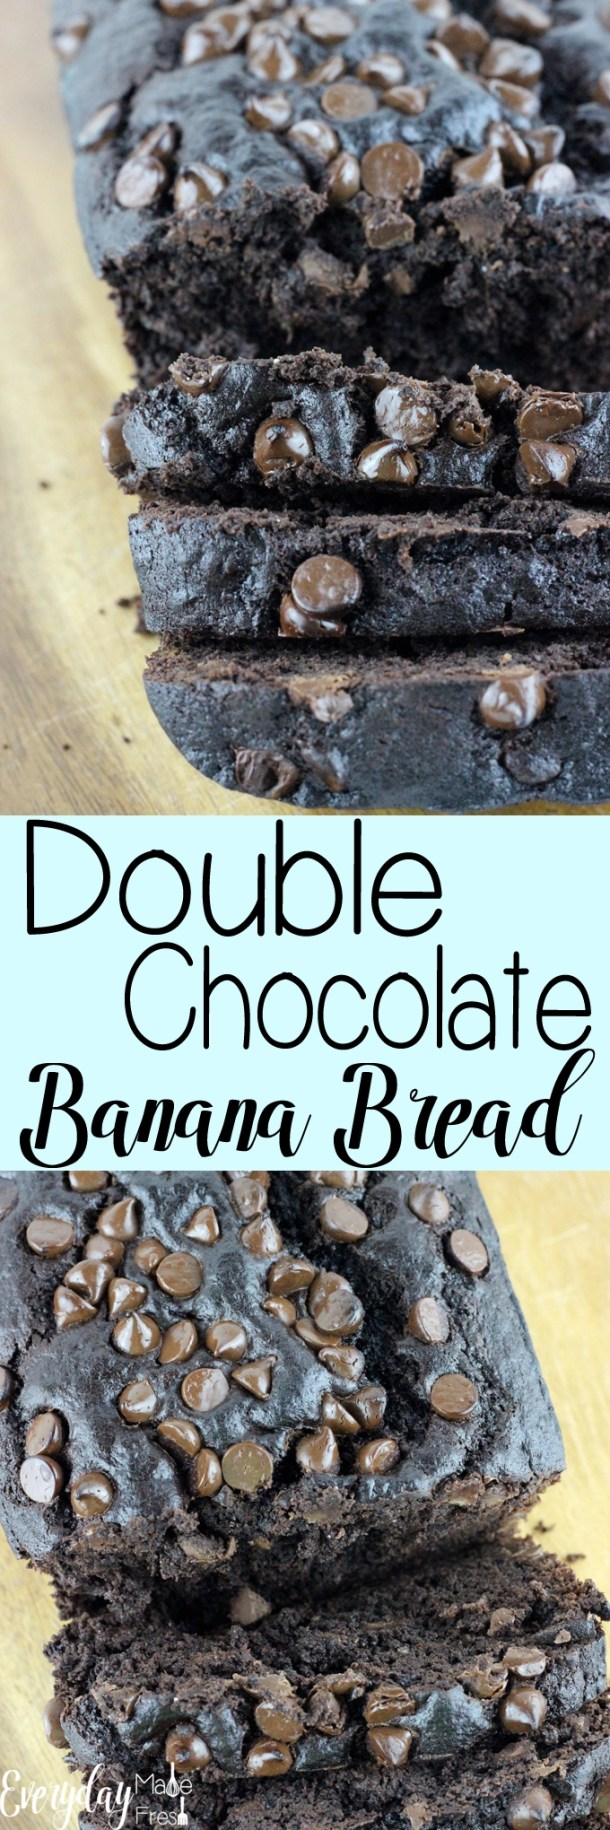 Chocolate chips and cocoa powder make this Double Chocolate Banana Bread so rich and tasty! You're going to love how easy it is to make too; only one bowl! | EverydayMadeFresh.com